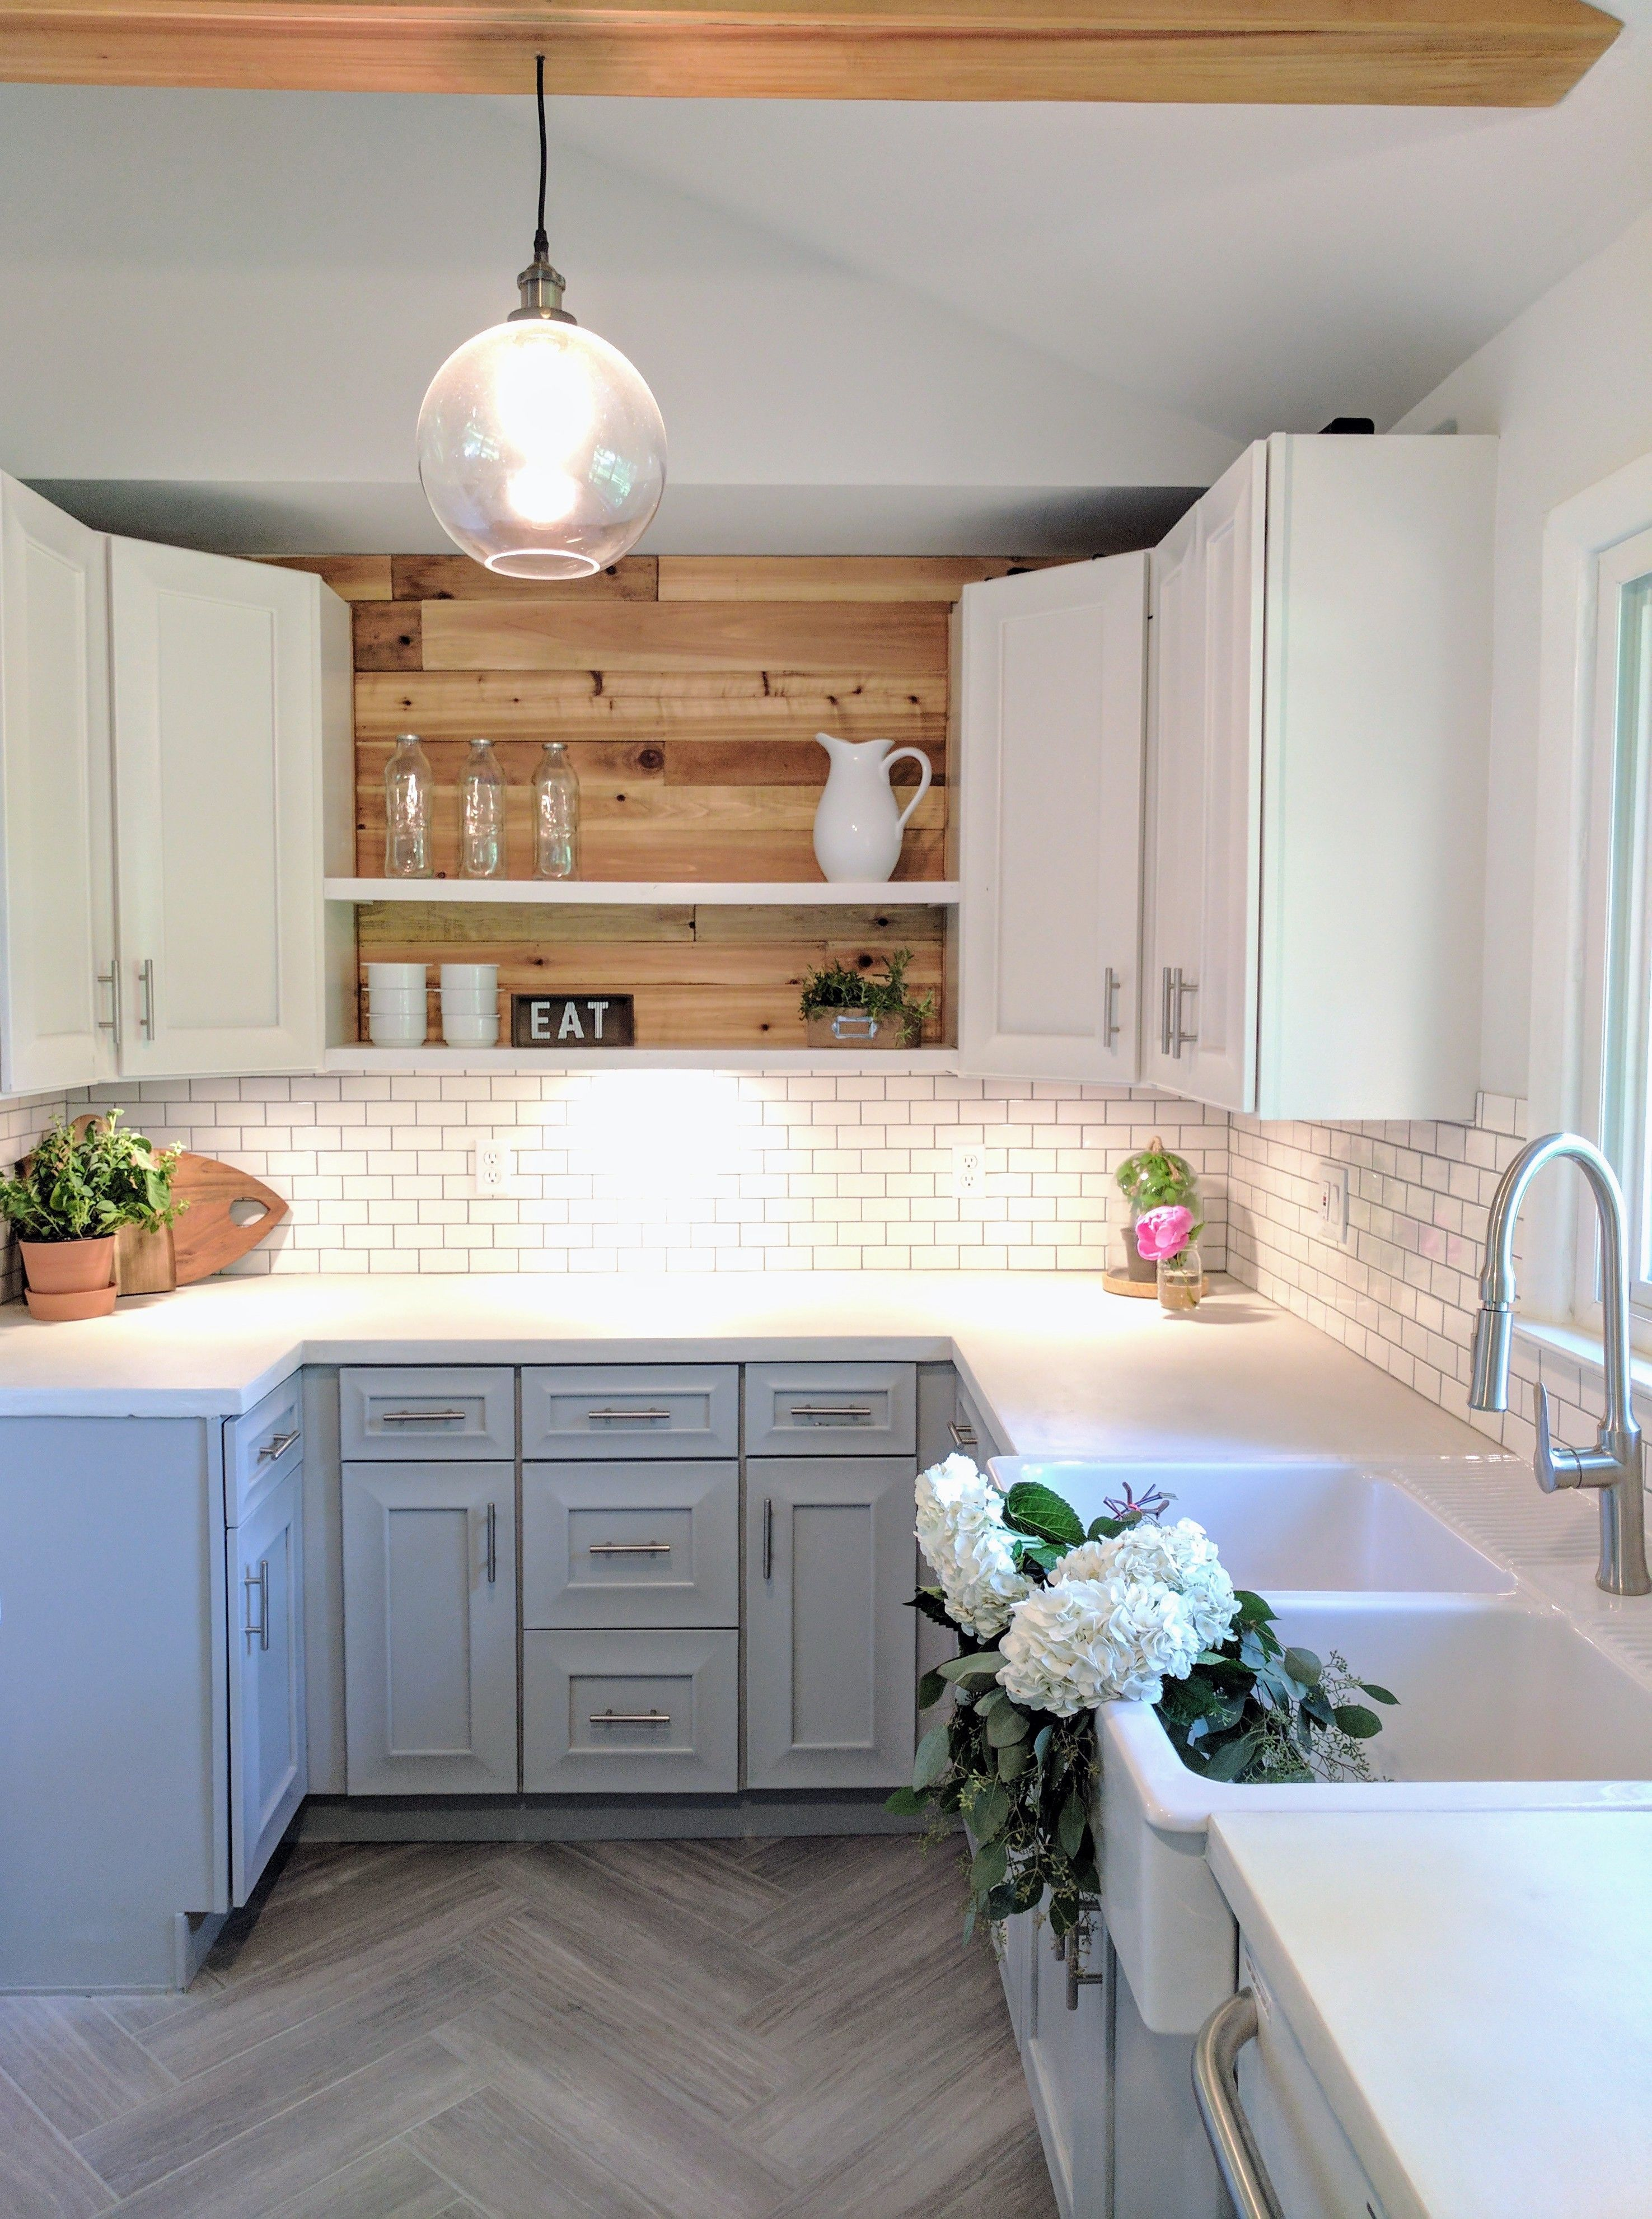 20+ Small Kitchen Renovations Before and After | Kitchen Ideas ... on kitchen color ideas, victorian renovation ideas, desk renovation ideas, kitchen backsplash ideas, attic renovation ideas, kitchen remodel, kitchen islands, bedroom renovation ideas, kitchen countertops, kitchen cabinets, landscaping ideas, kitchen pantry ideas, fire place renovation ideas, small kitchen ideas, country kitchen ideas, galley kitchen ideas, kitchen wood ideas, kitchen tile ideas, kitchen lighting ideas, kitchen design ideas,